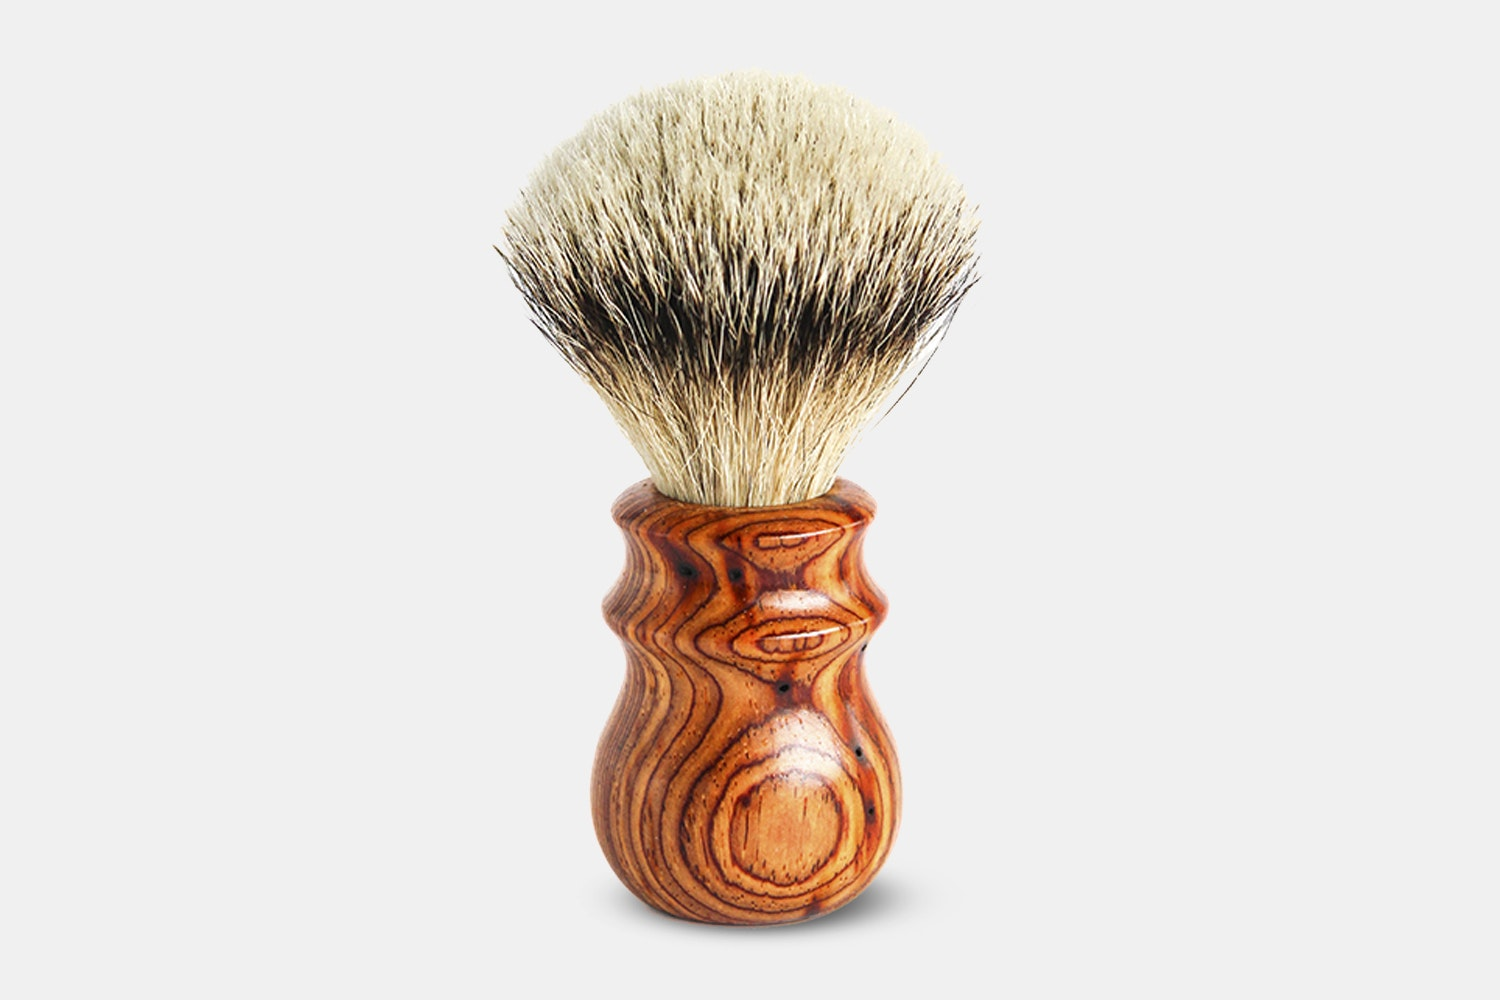 Silvertip Badger Cocbolo Heritage Brush - Orange (+ $40)